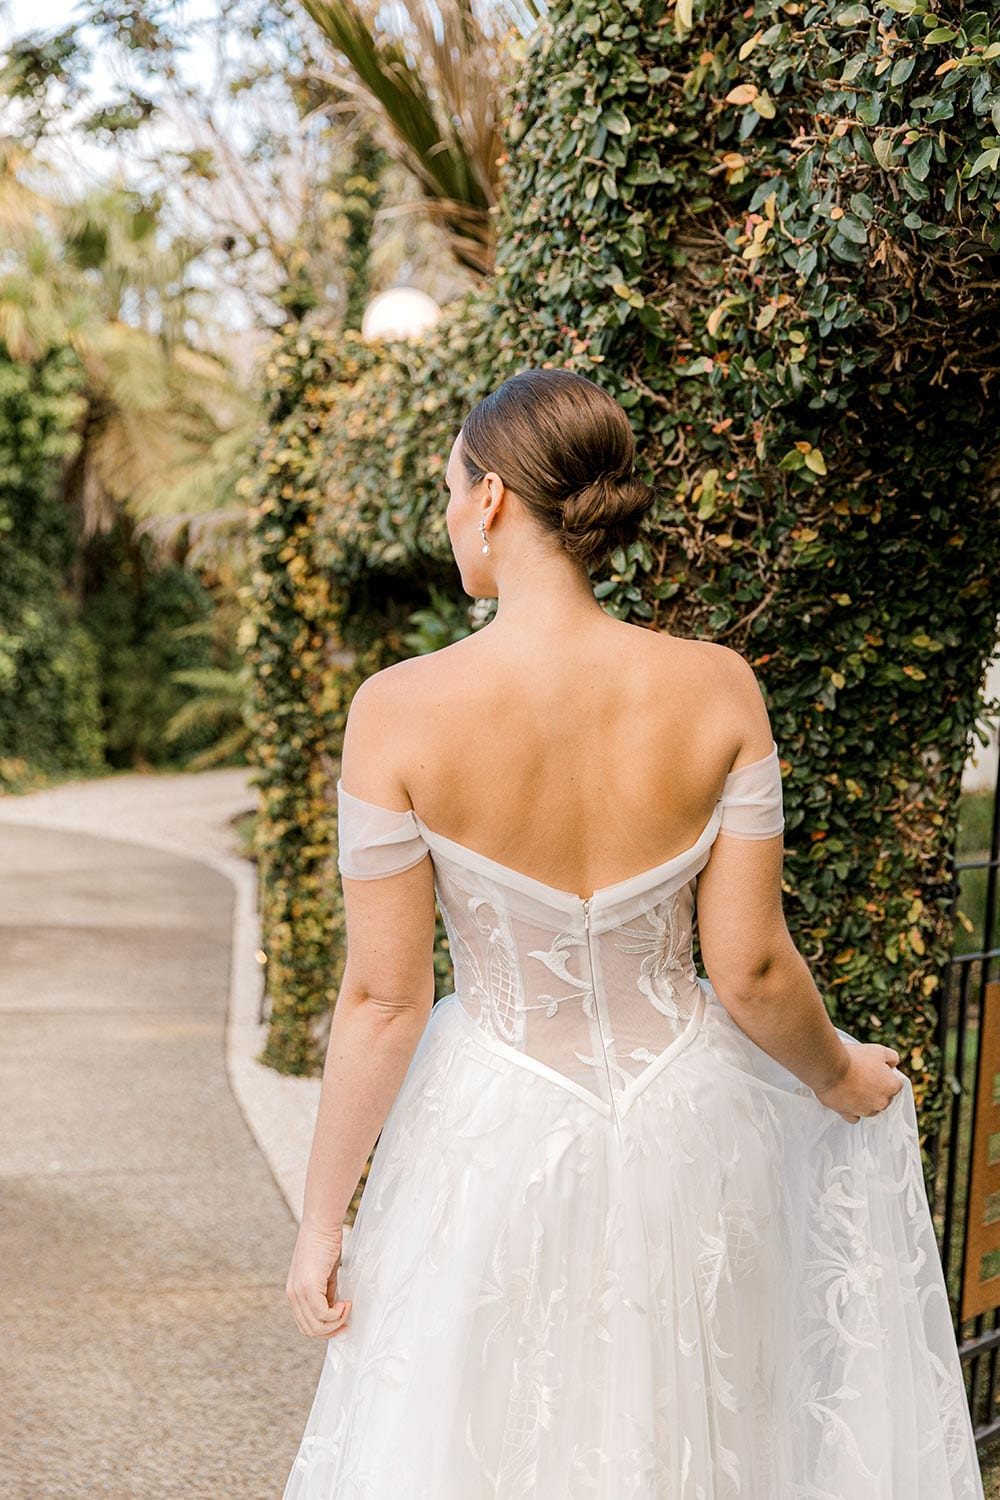 Zoe wedding dress by Vinka Design - a romantic & dreamy off-shoulder gown with a structured, boned bodice, a full lace & tulle skirt. Semi-sheer bodice with tulle off-shoulder detailing and satin belt. Worn in green garden archway, model facing away -close up.